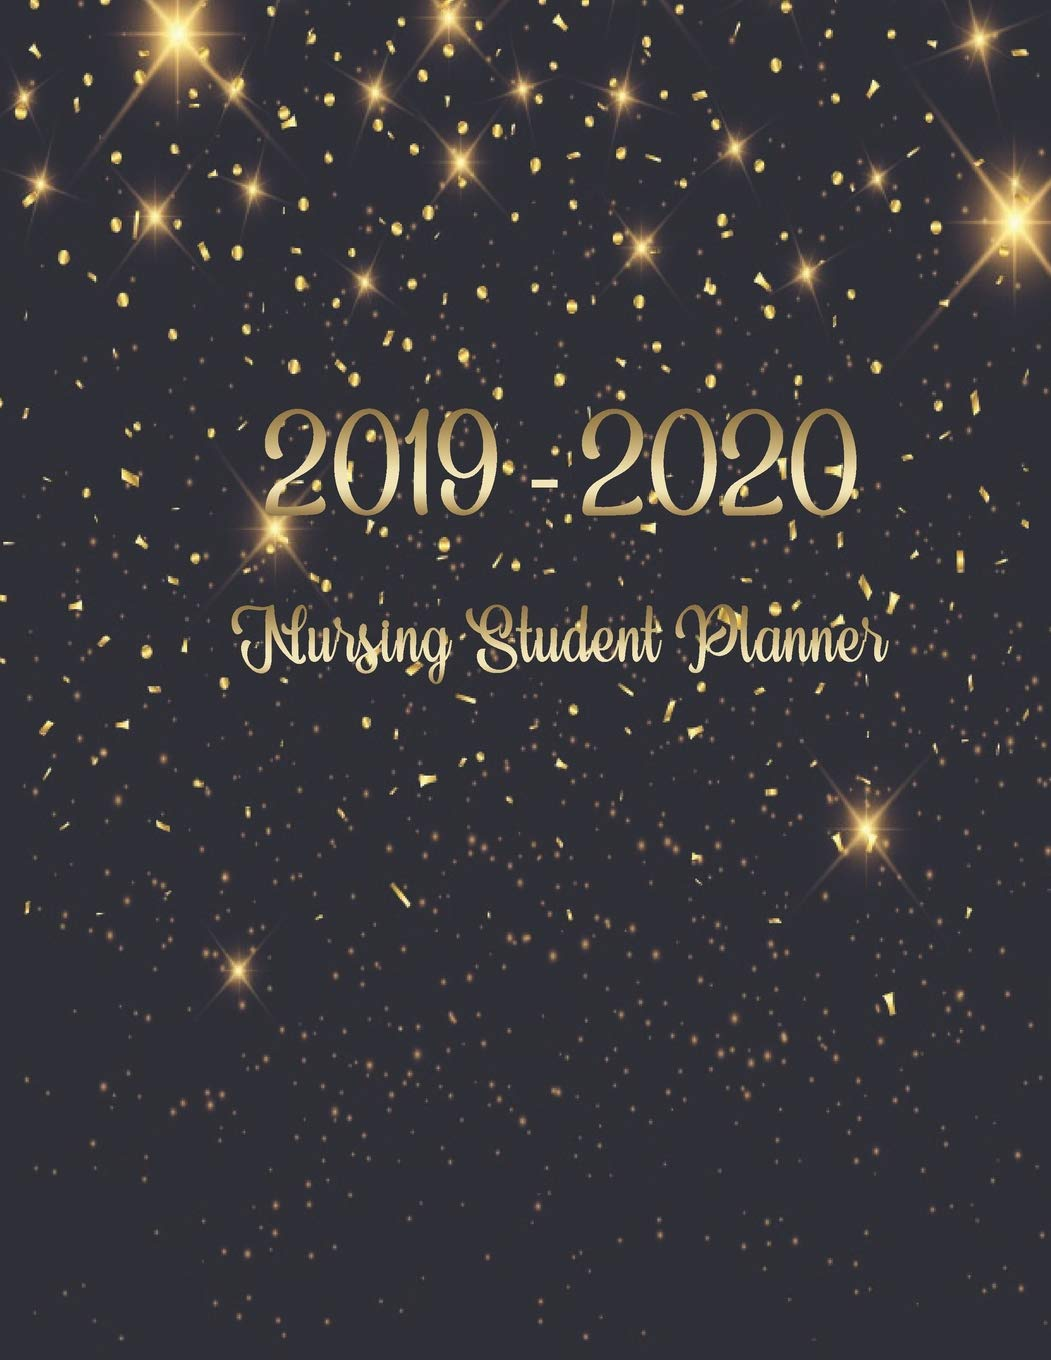 Amazon.com: Nursing Student Planner 2019-2020: Weekly and ...